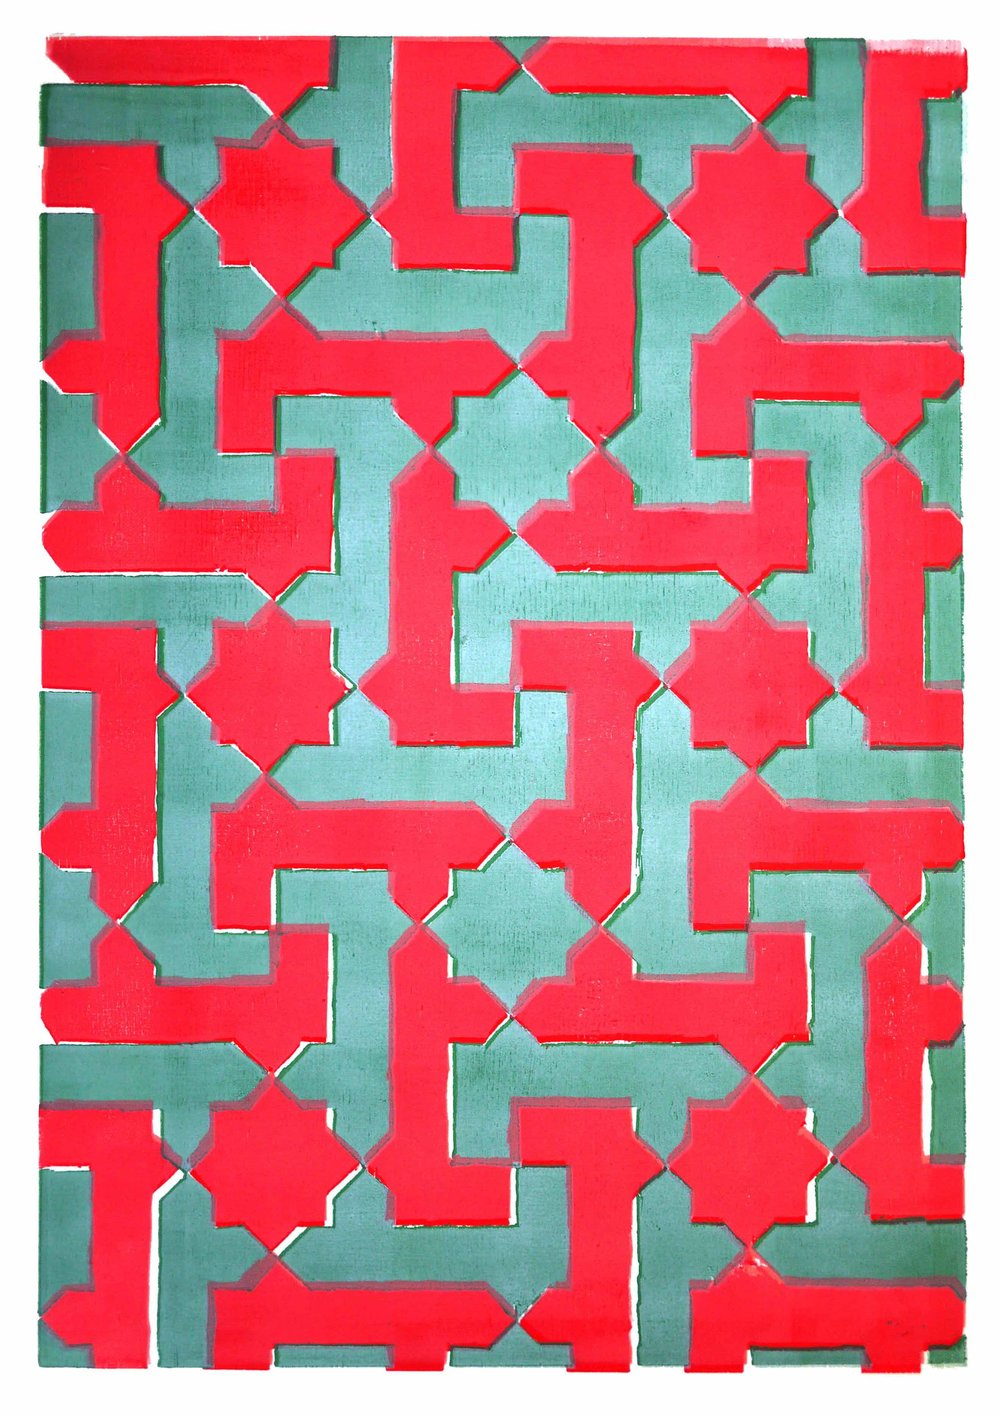 "Pattern Maze Wood Block Color 23 x 29"" 2017 $350"